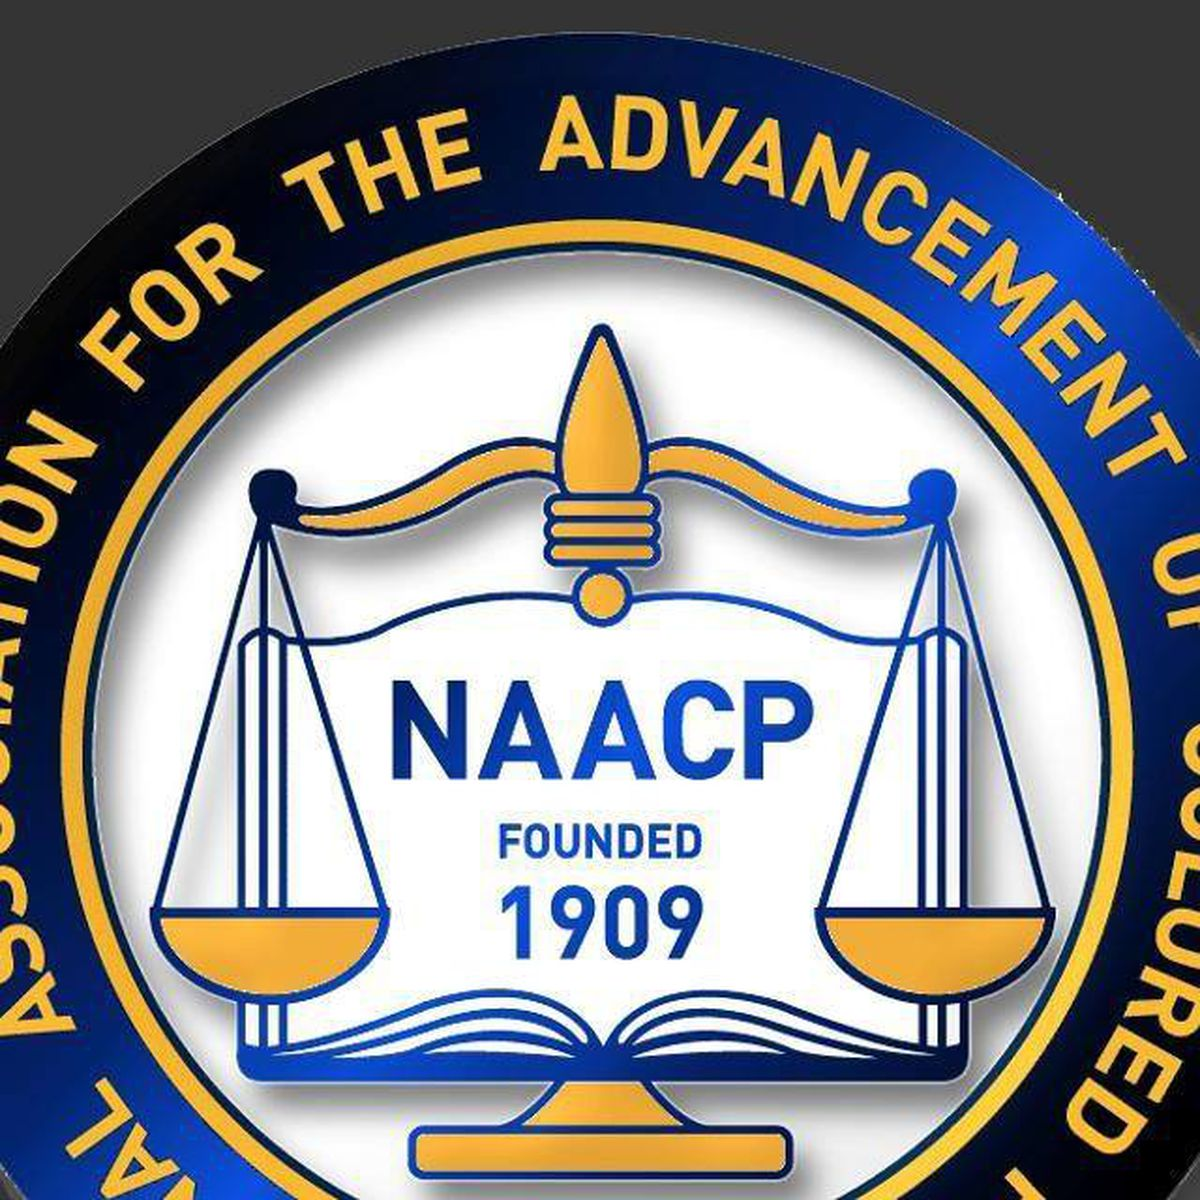 NAACP celebrates 110th anniversary picture freeuse library